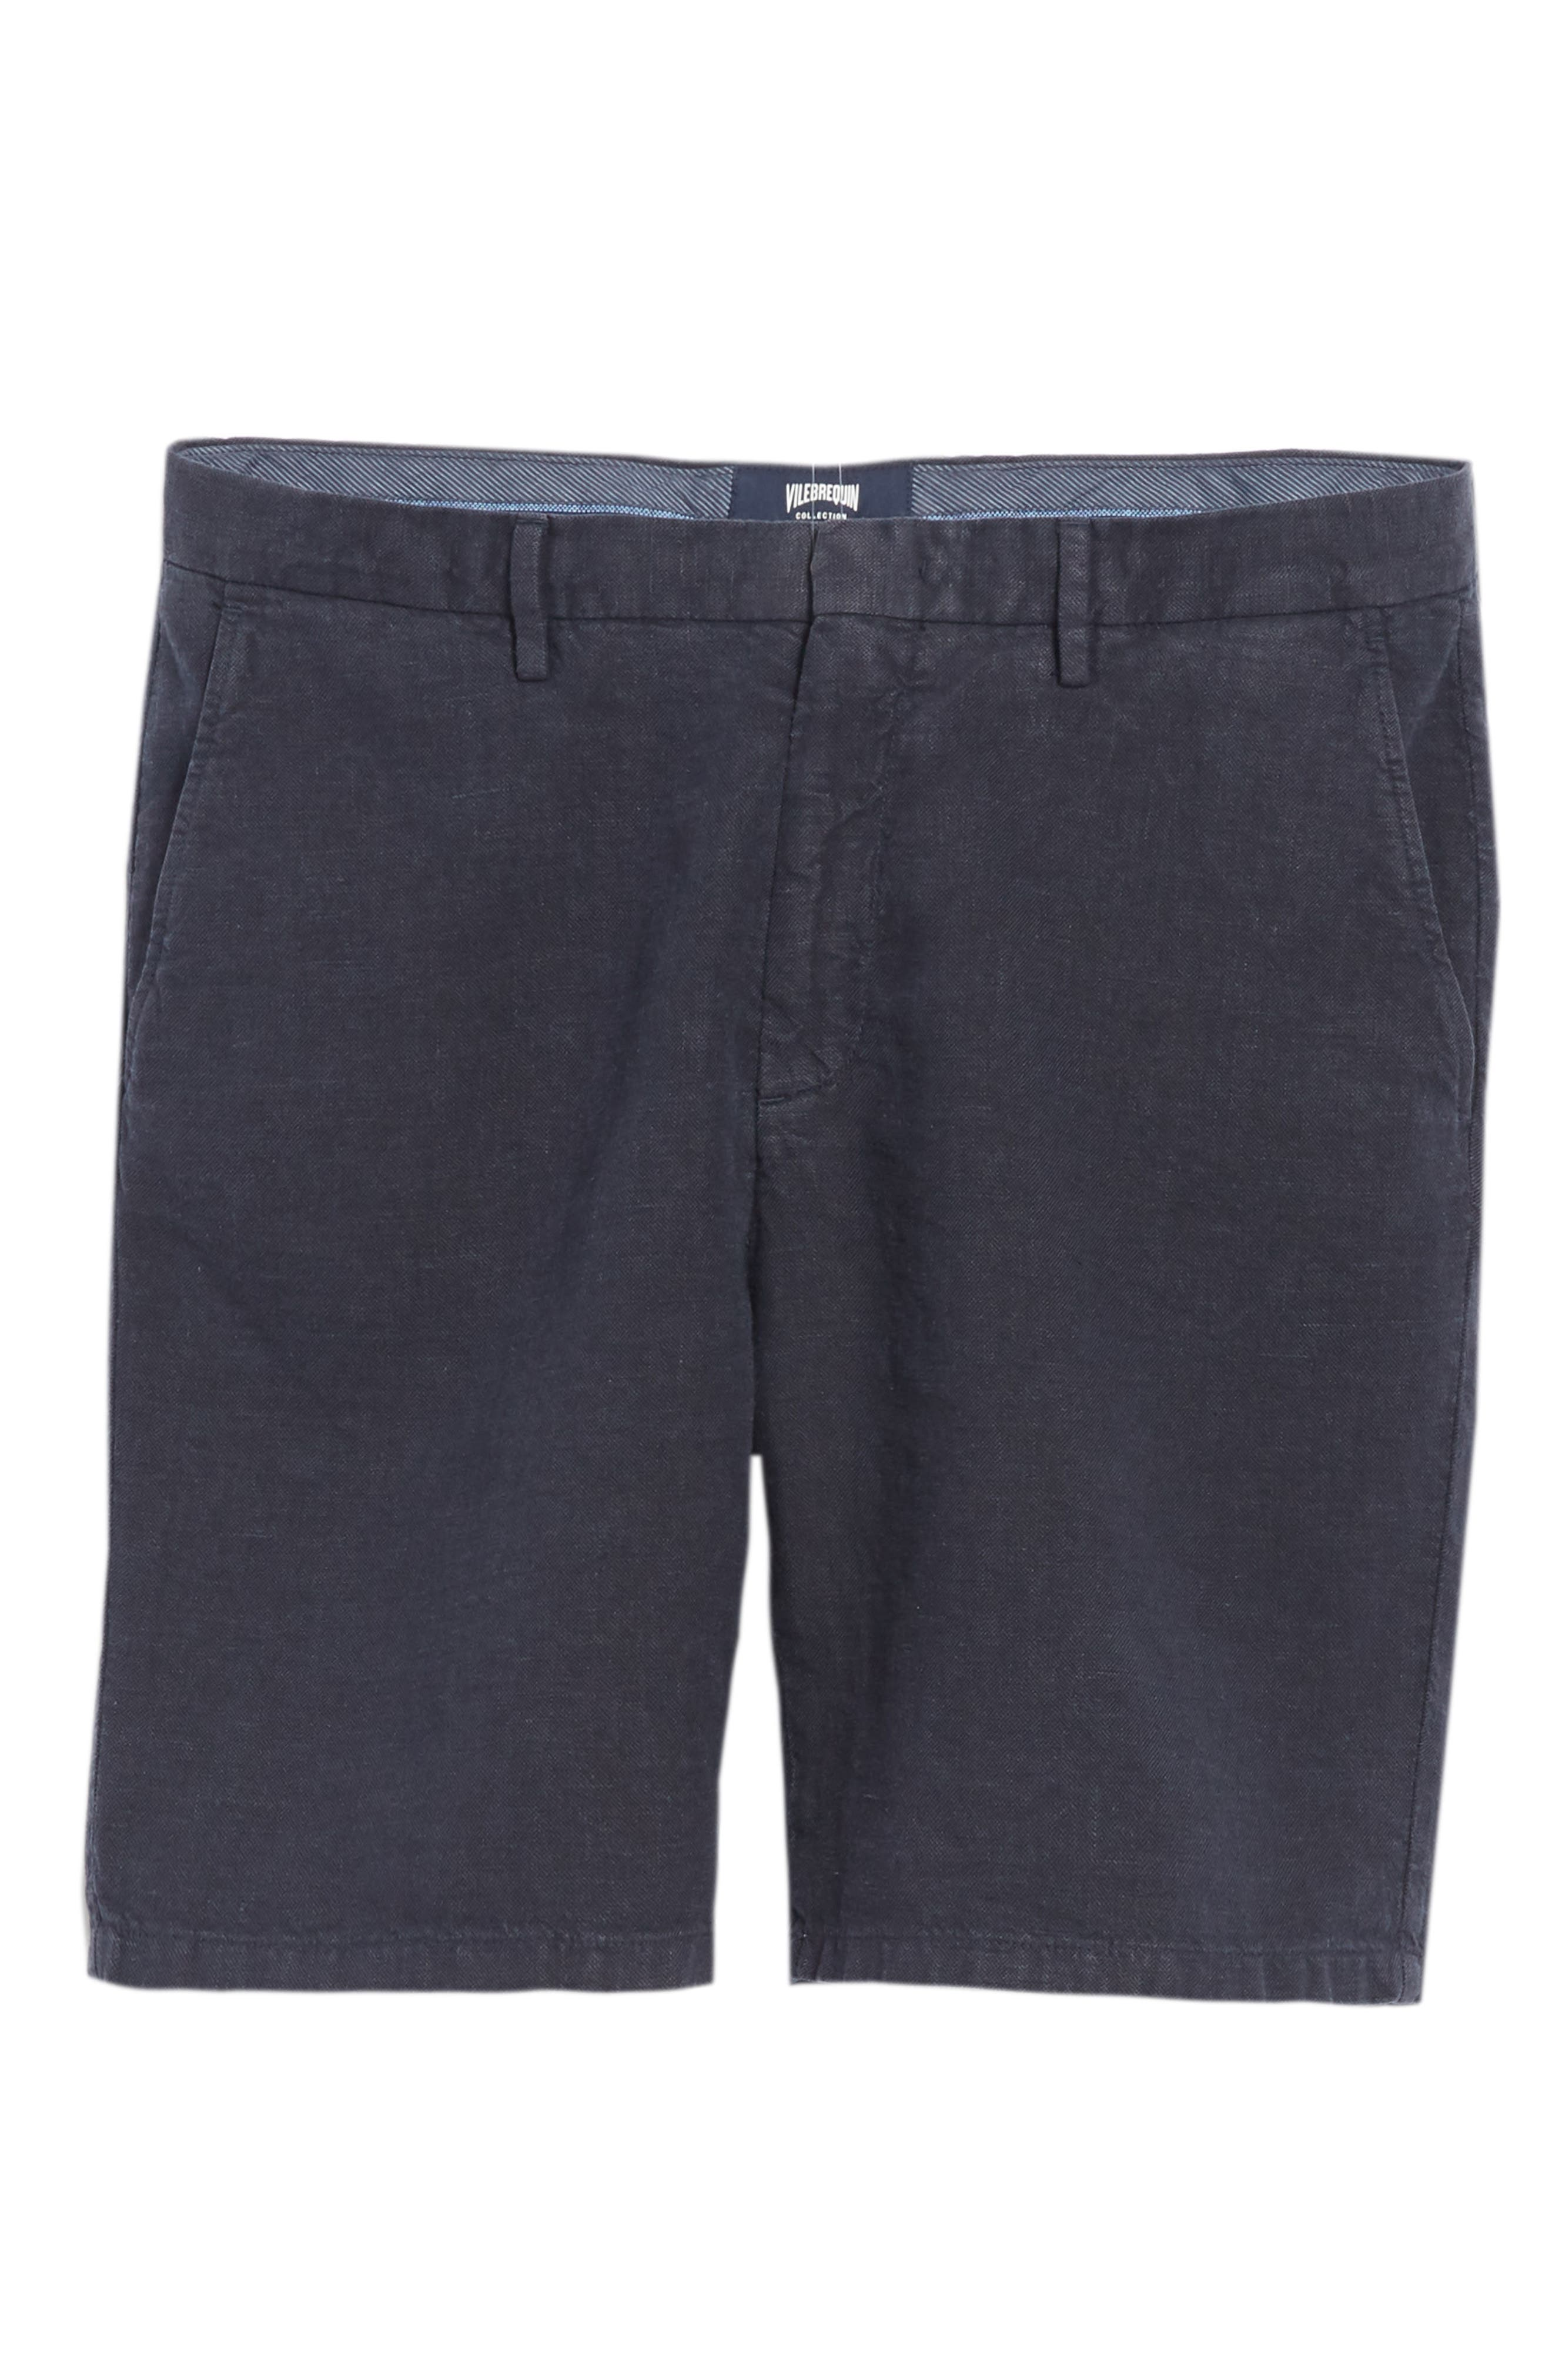 Panama Linen & Cotton Chino Shorts,                             Alternate thumbnail 6, color,                             Squid Ink